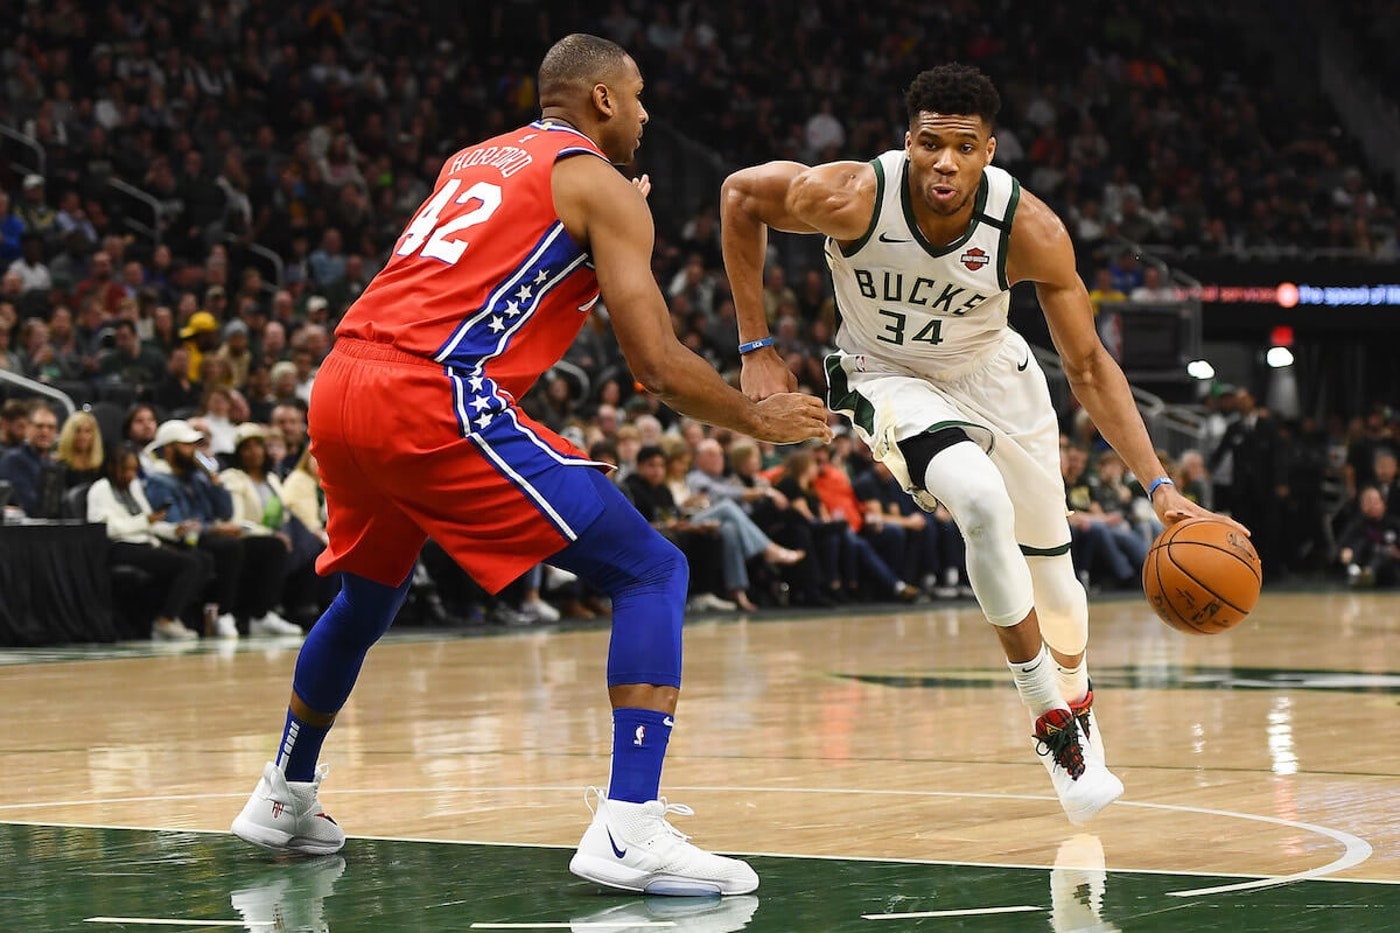 Giannis Antetokounmpo, #34 of the Milwaukee Bucks, is defended by Al Horford #42 of the Philadelphia 76ers during a game at Fiserv Forum on February 22, 2020 in Milwaukee.  (Photo by Stacy Revere/Getty Images)